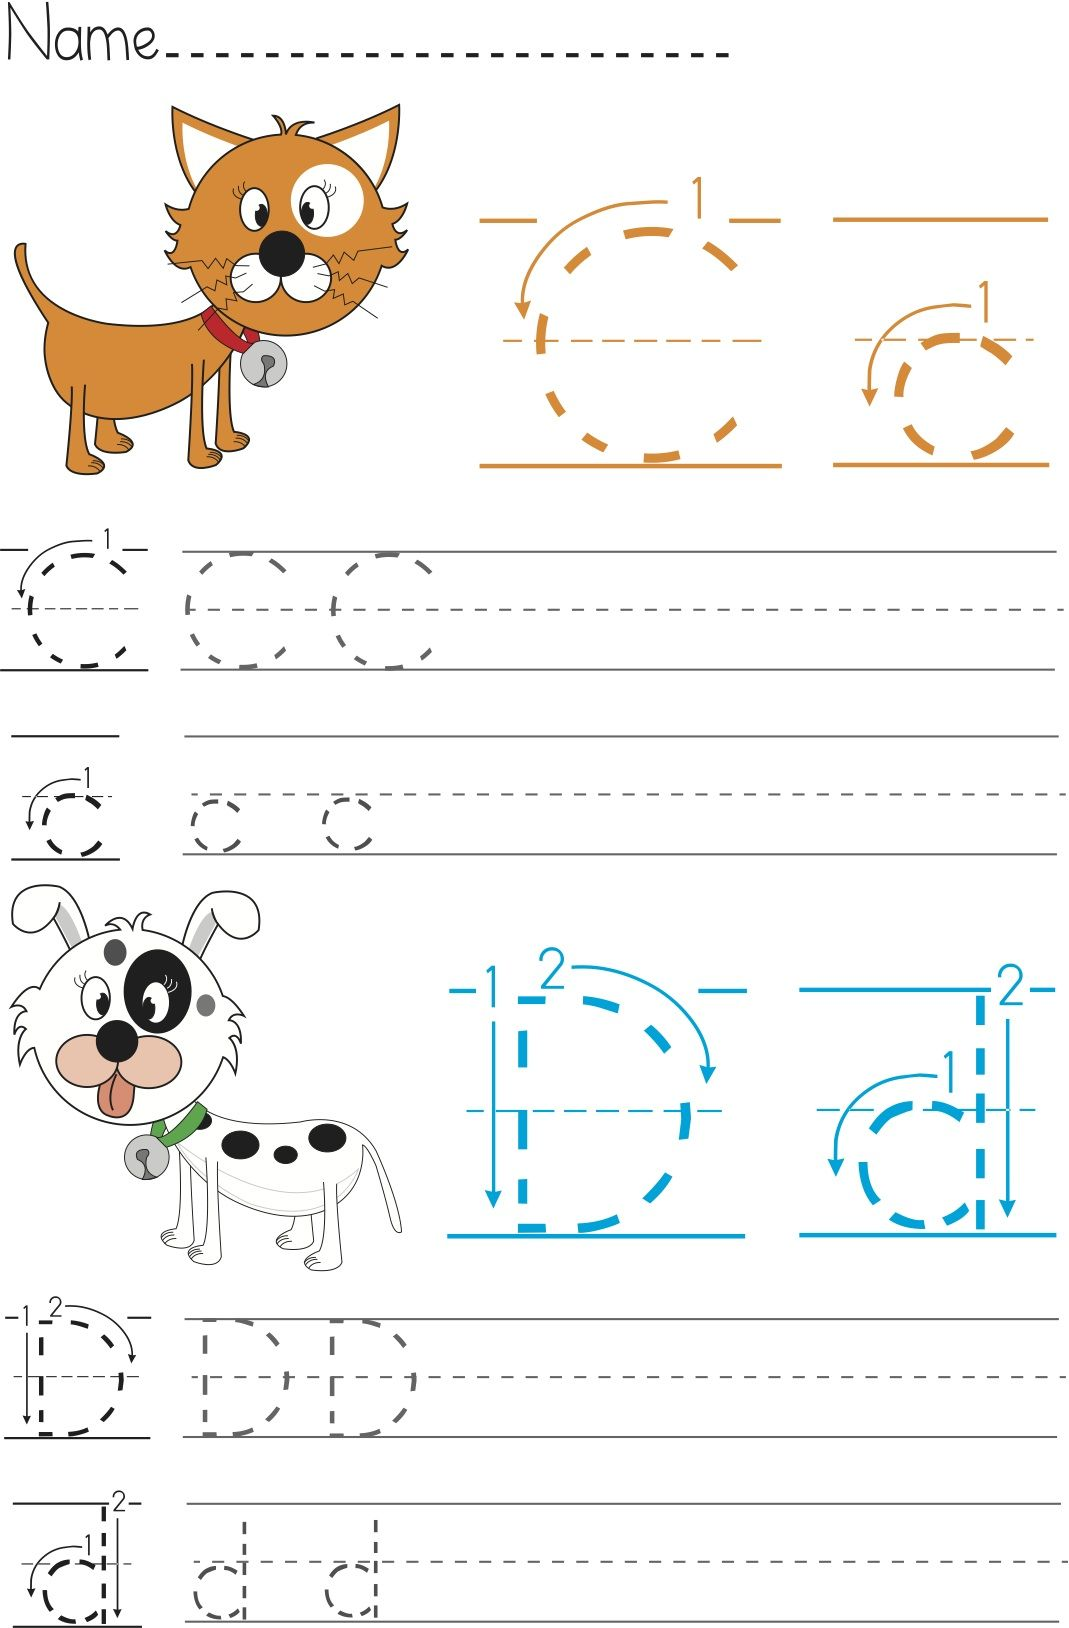 Writing Worksheet For Kids It S Writing Practice For Children With